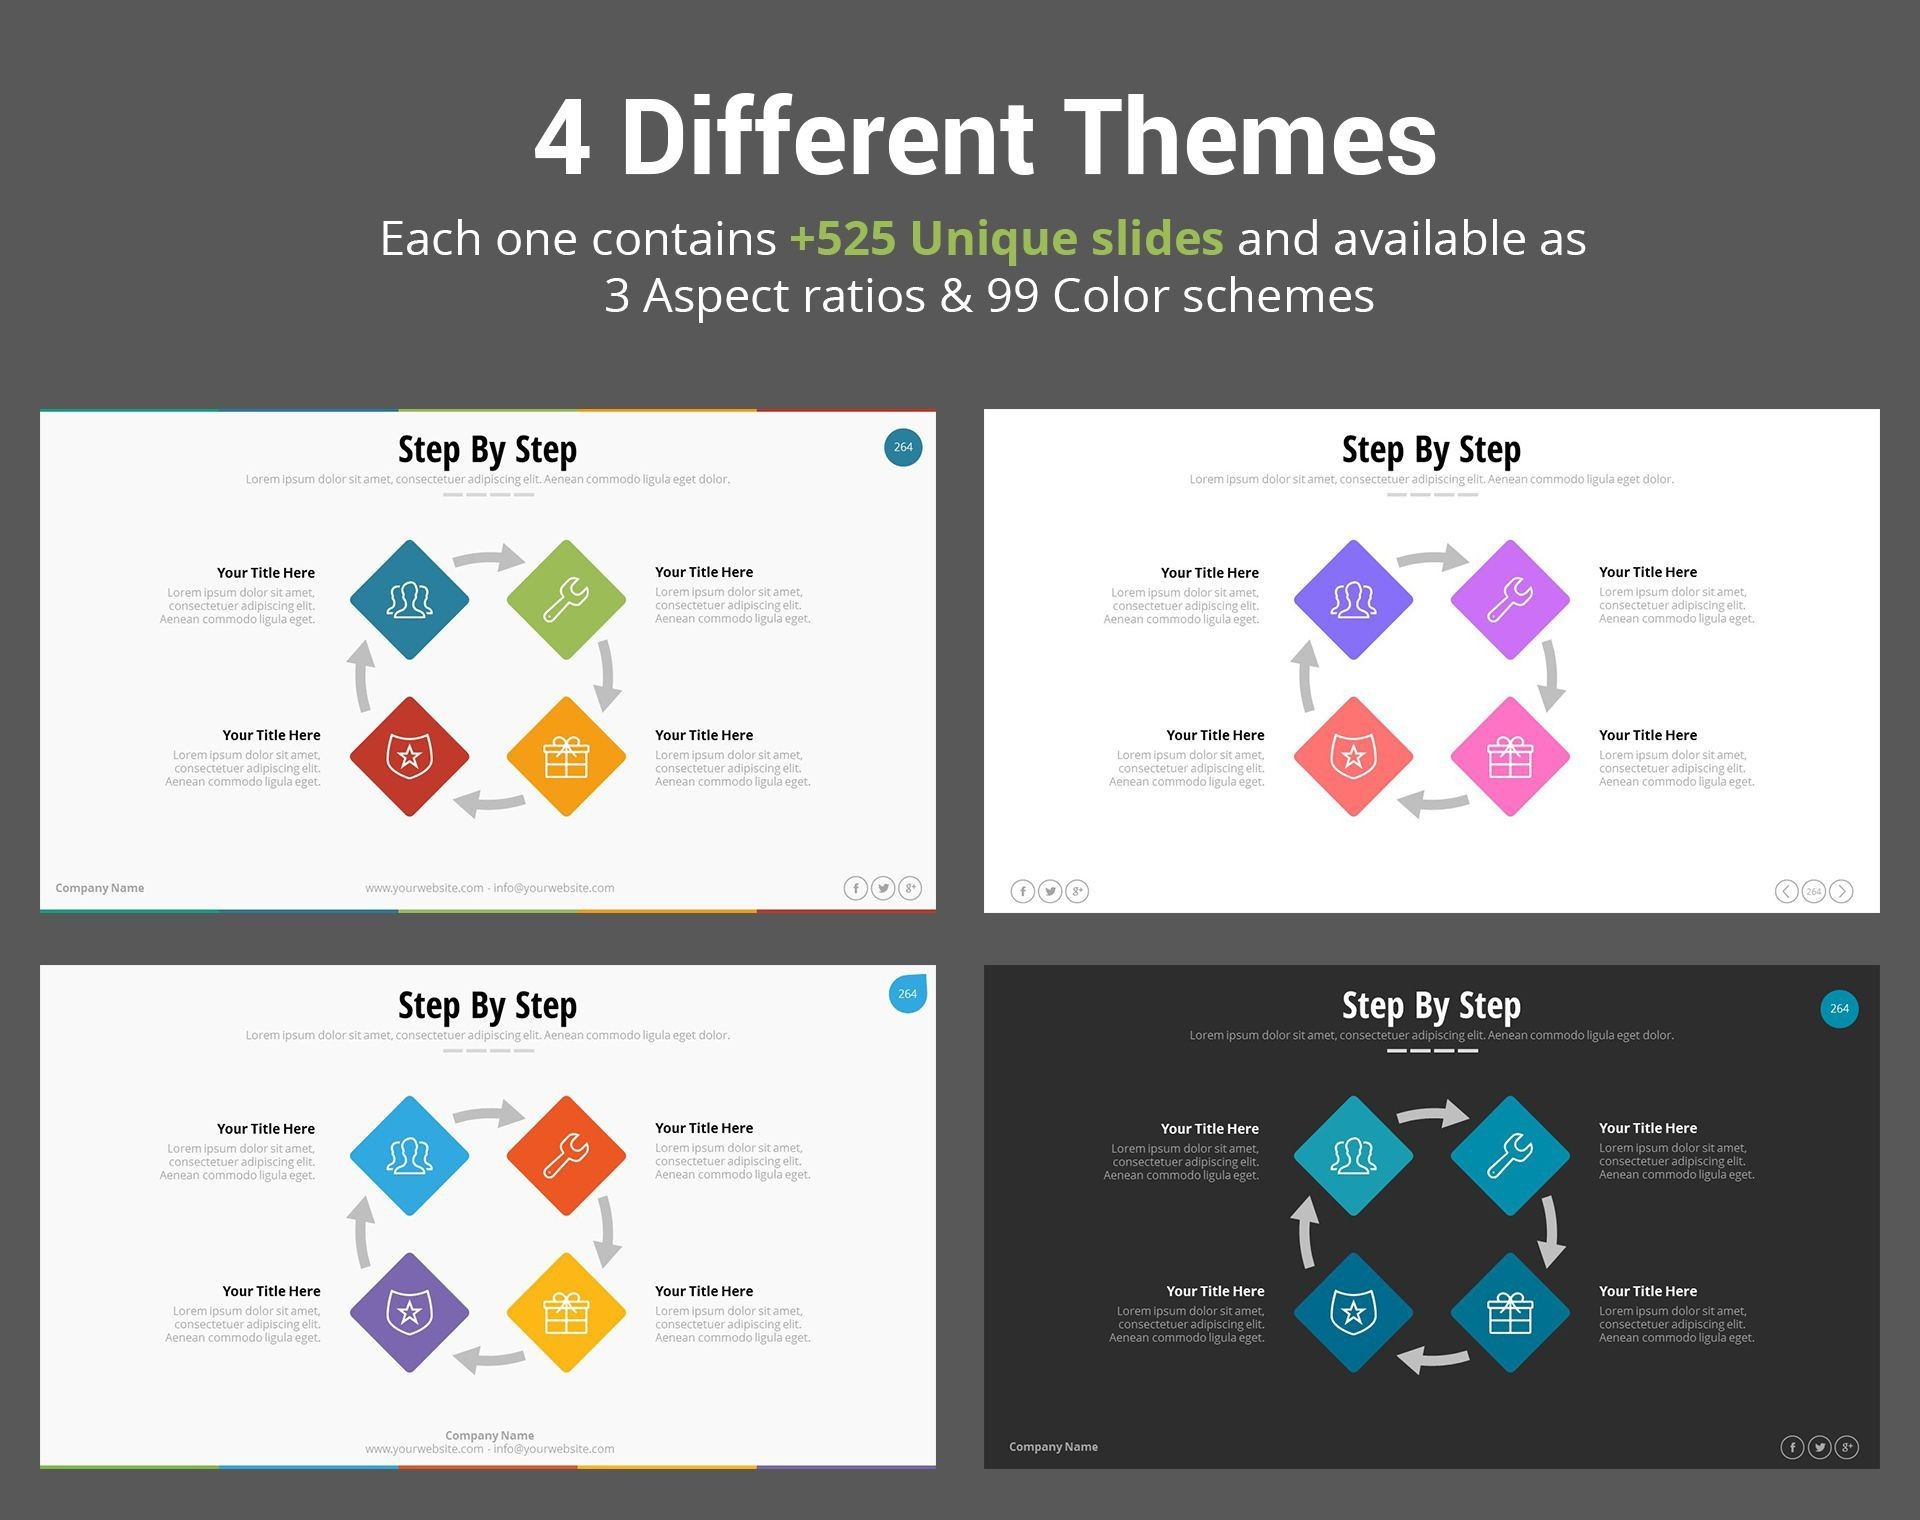 002 Exceptional Startup Busines Plan Template Ppt Design  Free1920